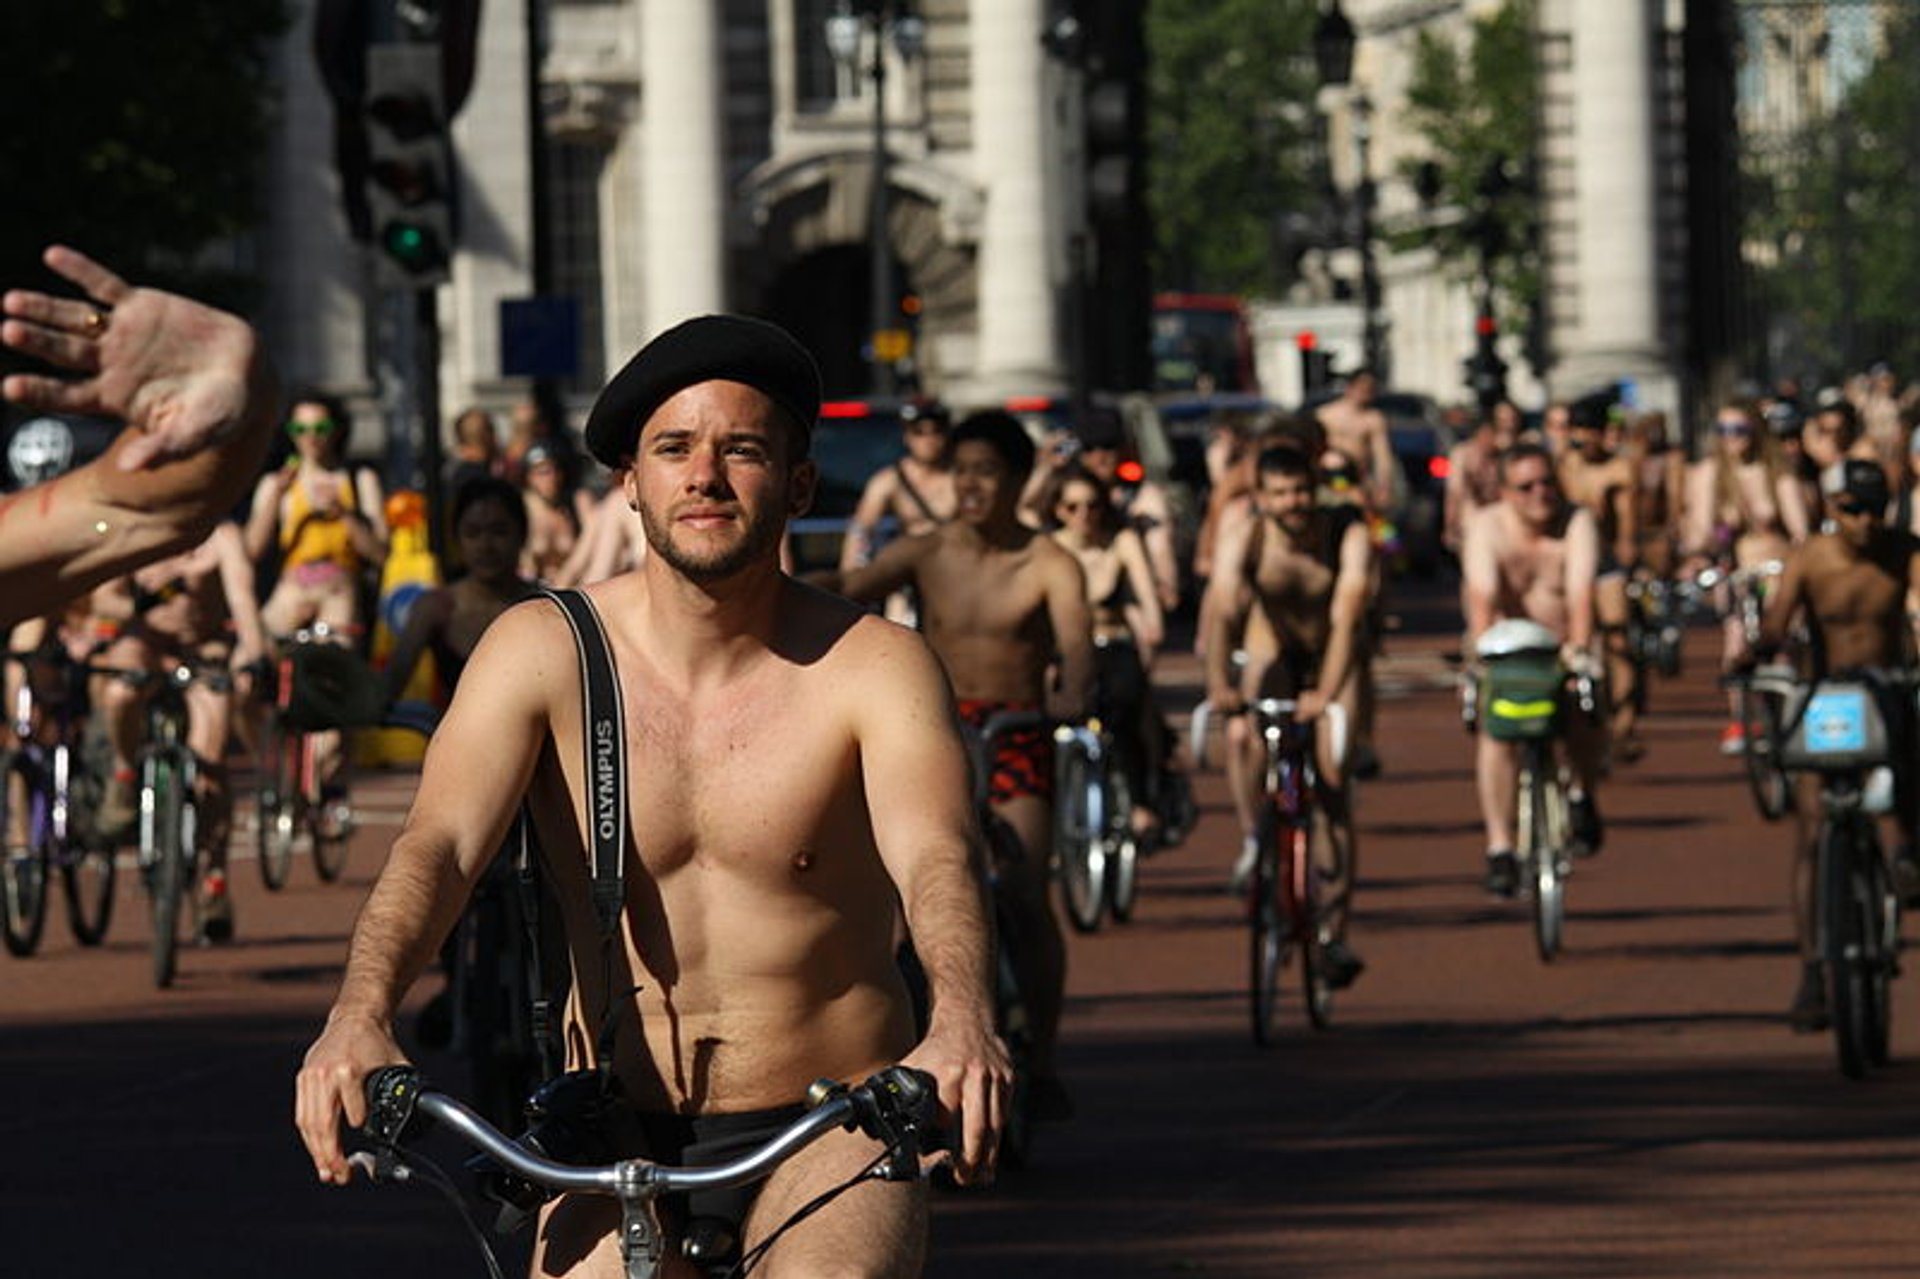 World Naked Bike Ride in London on The Mall street, London, England, Great Britain 2019